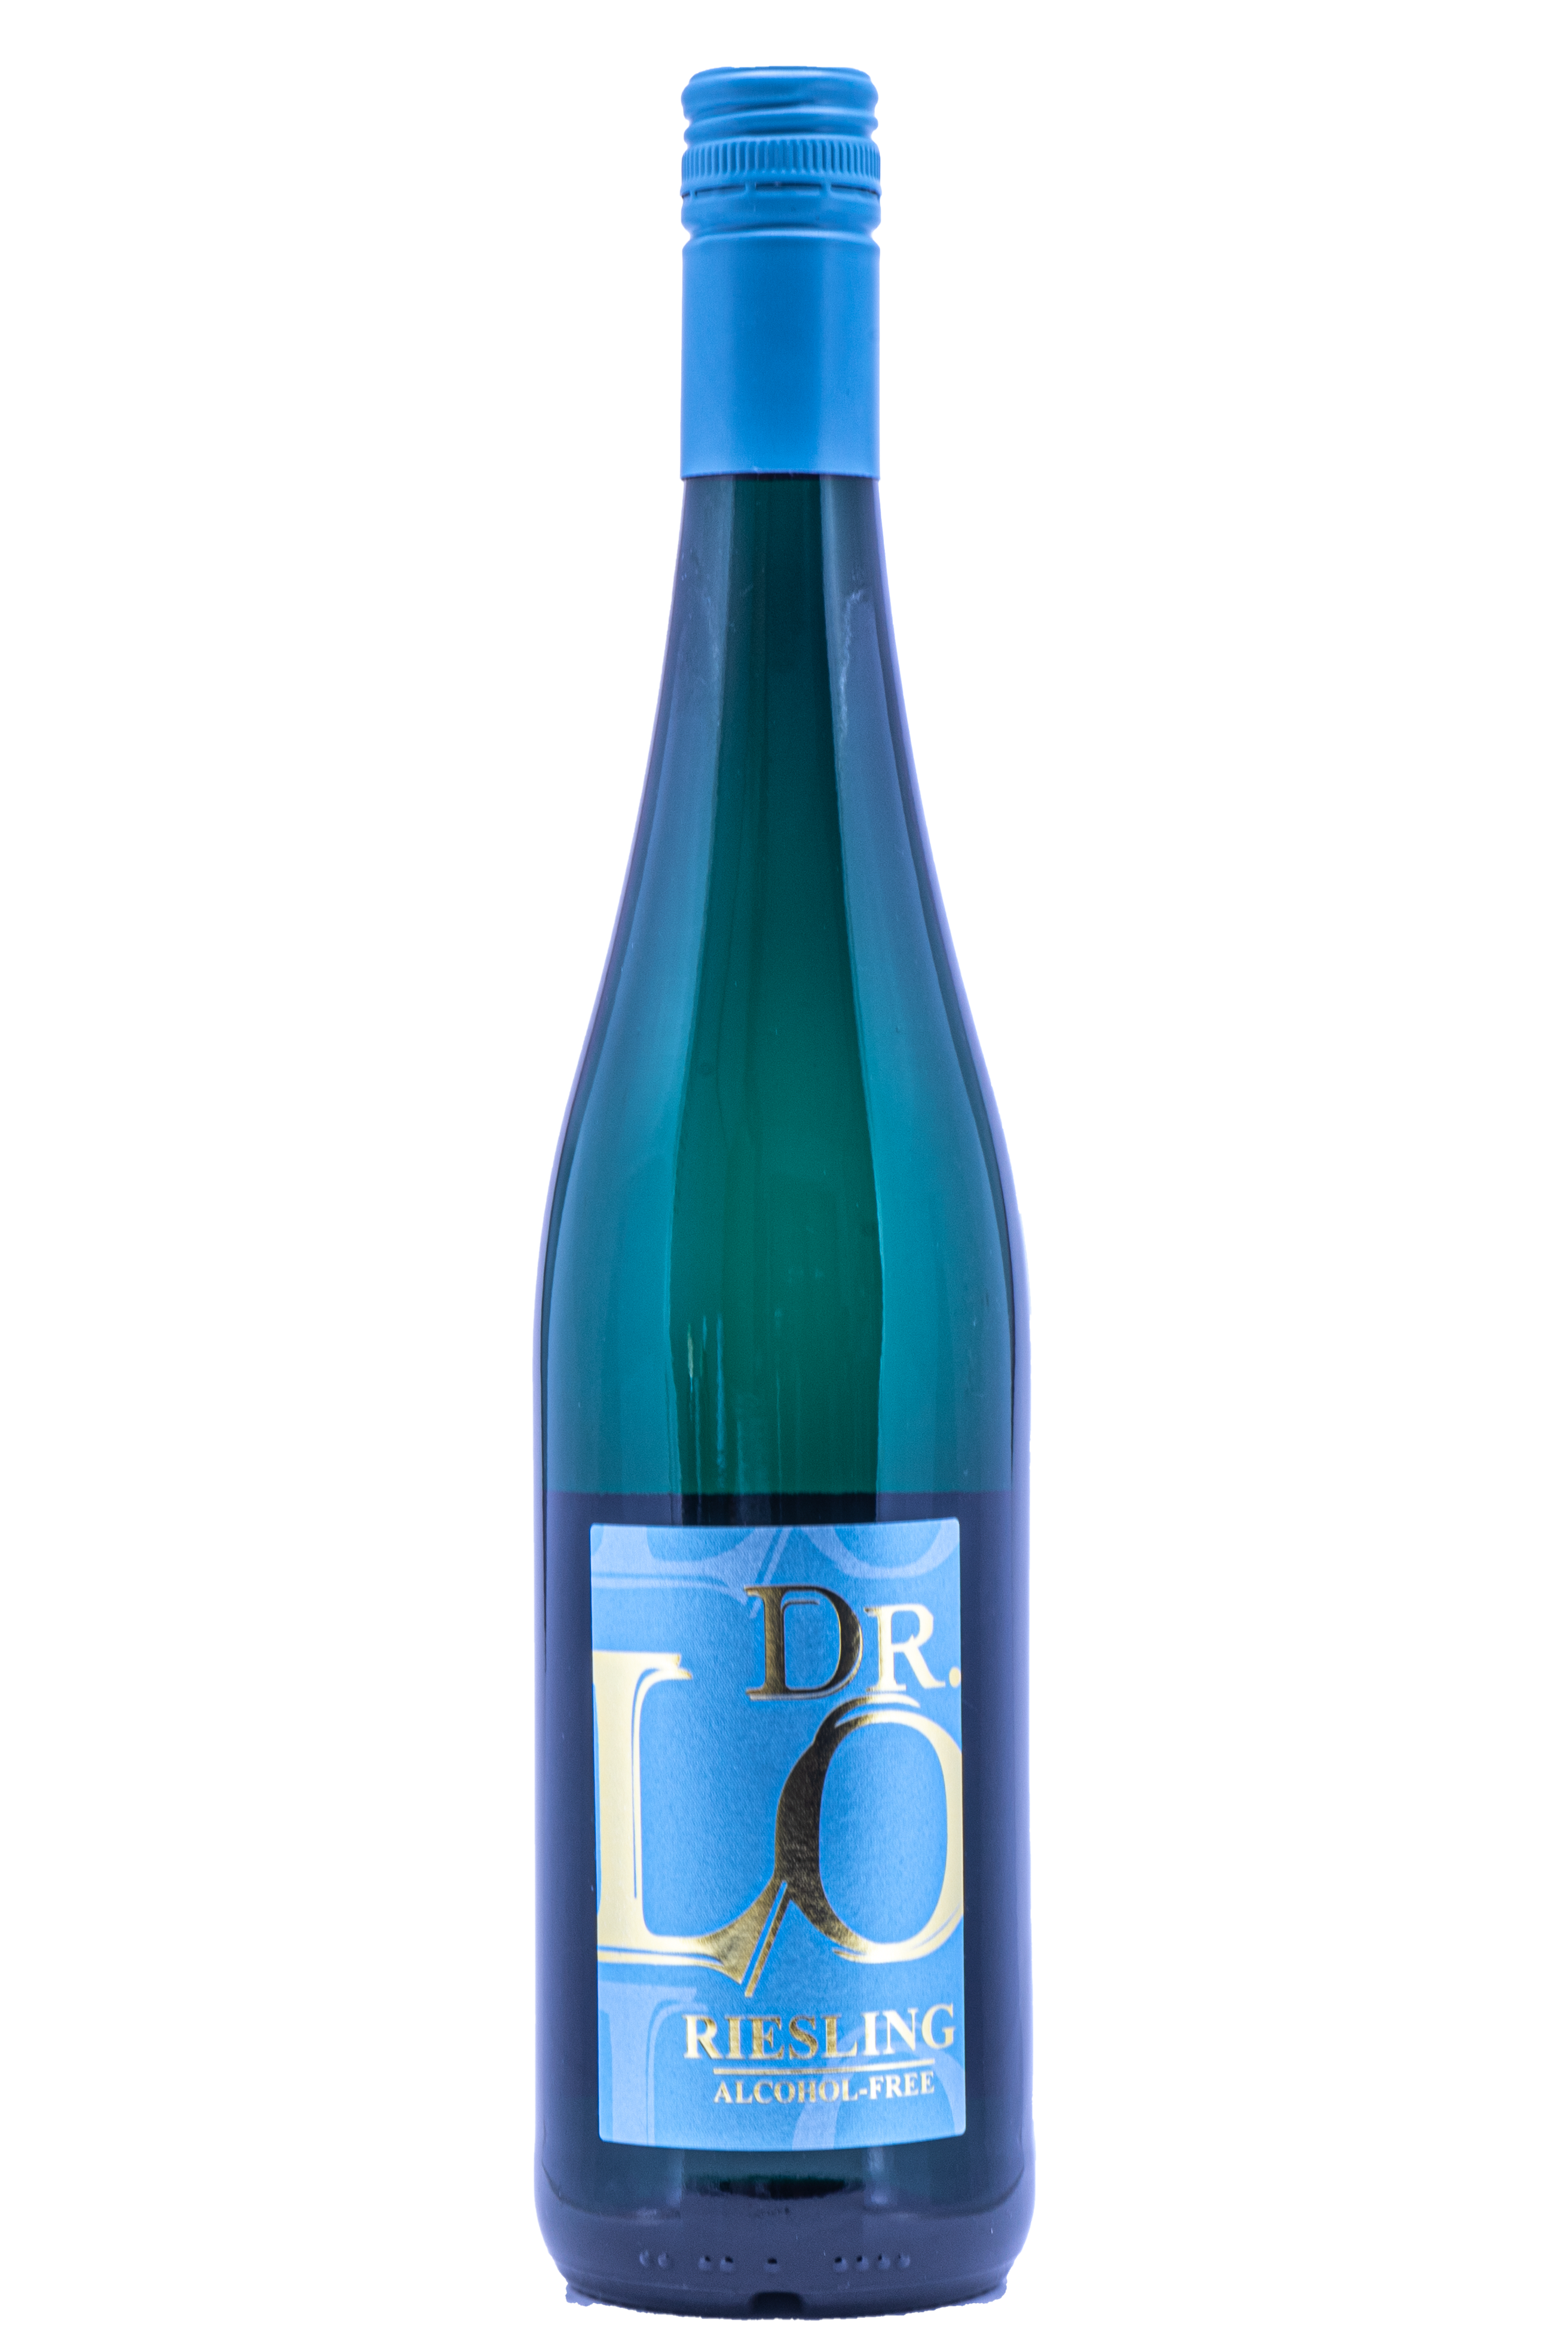 2019 DR. LO Riesling Alkoholfrei